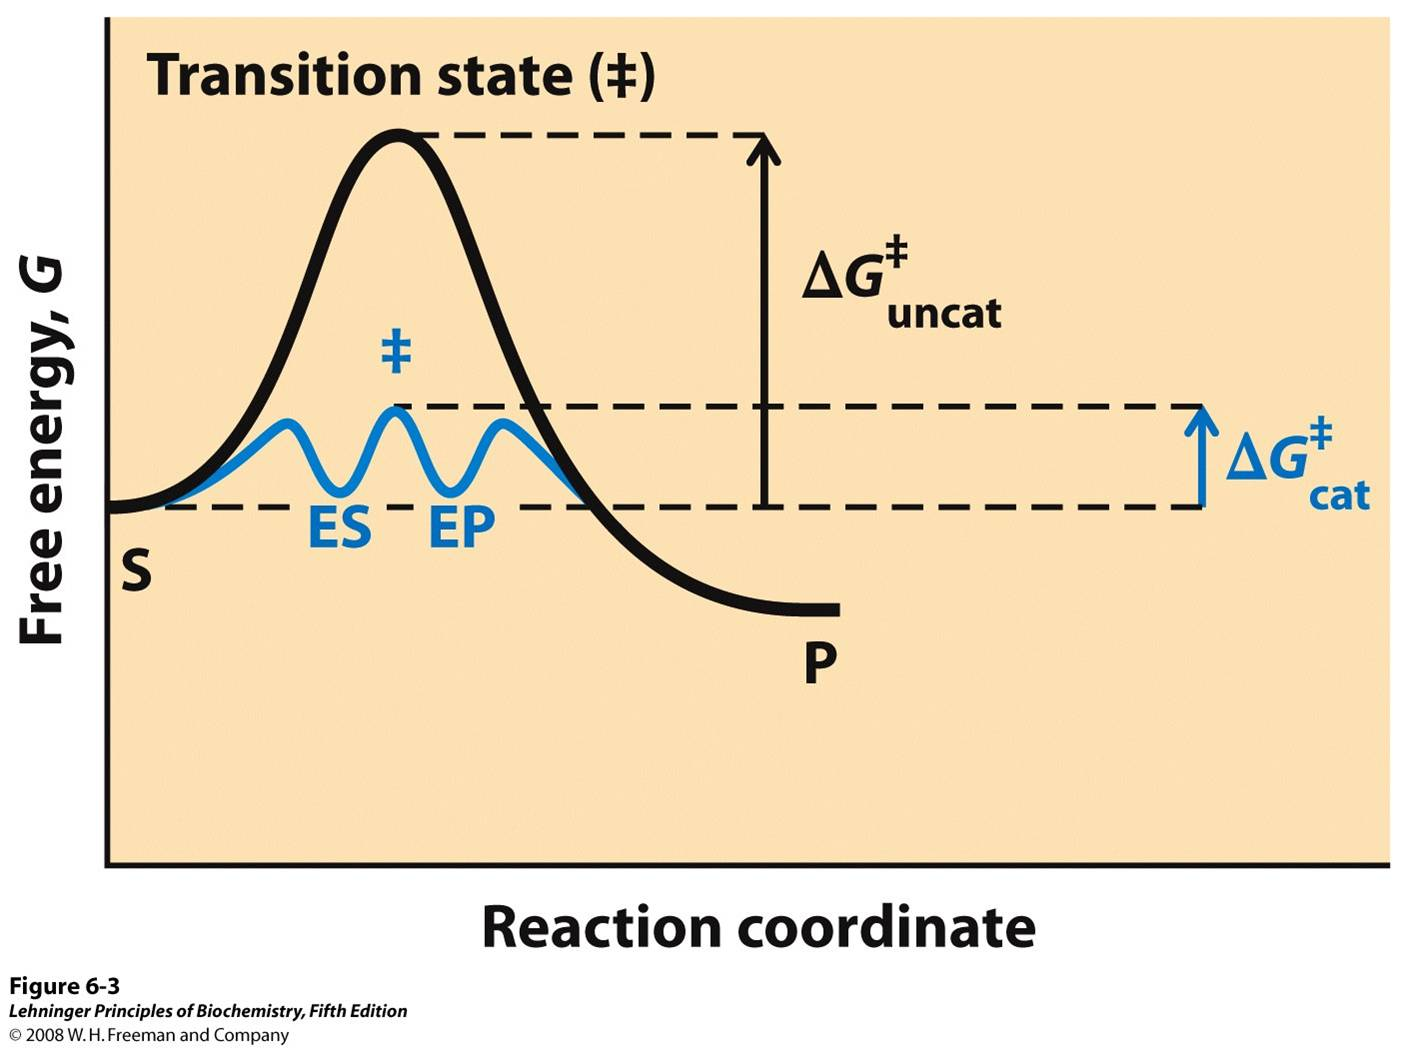 Reaction Coordinate Diagram Comparing Enzyme Catalyzed And